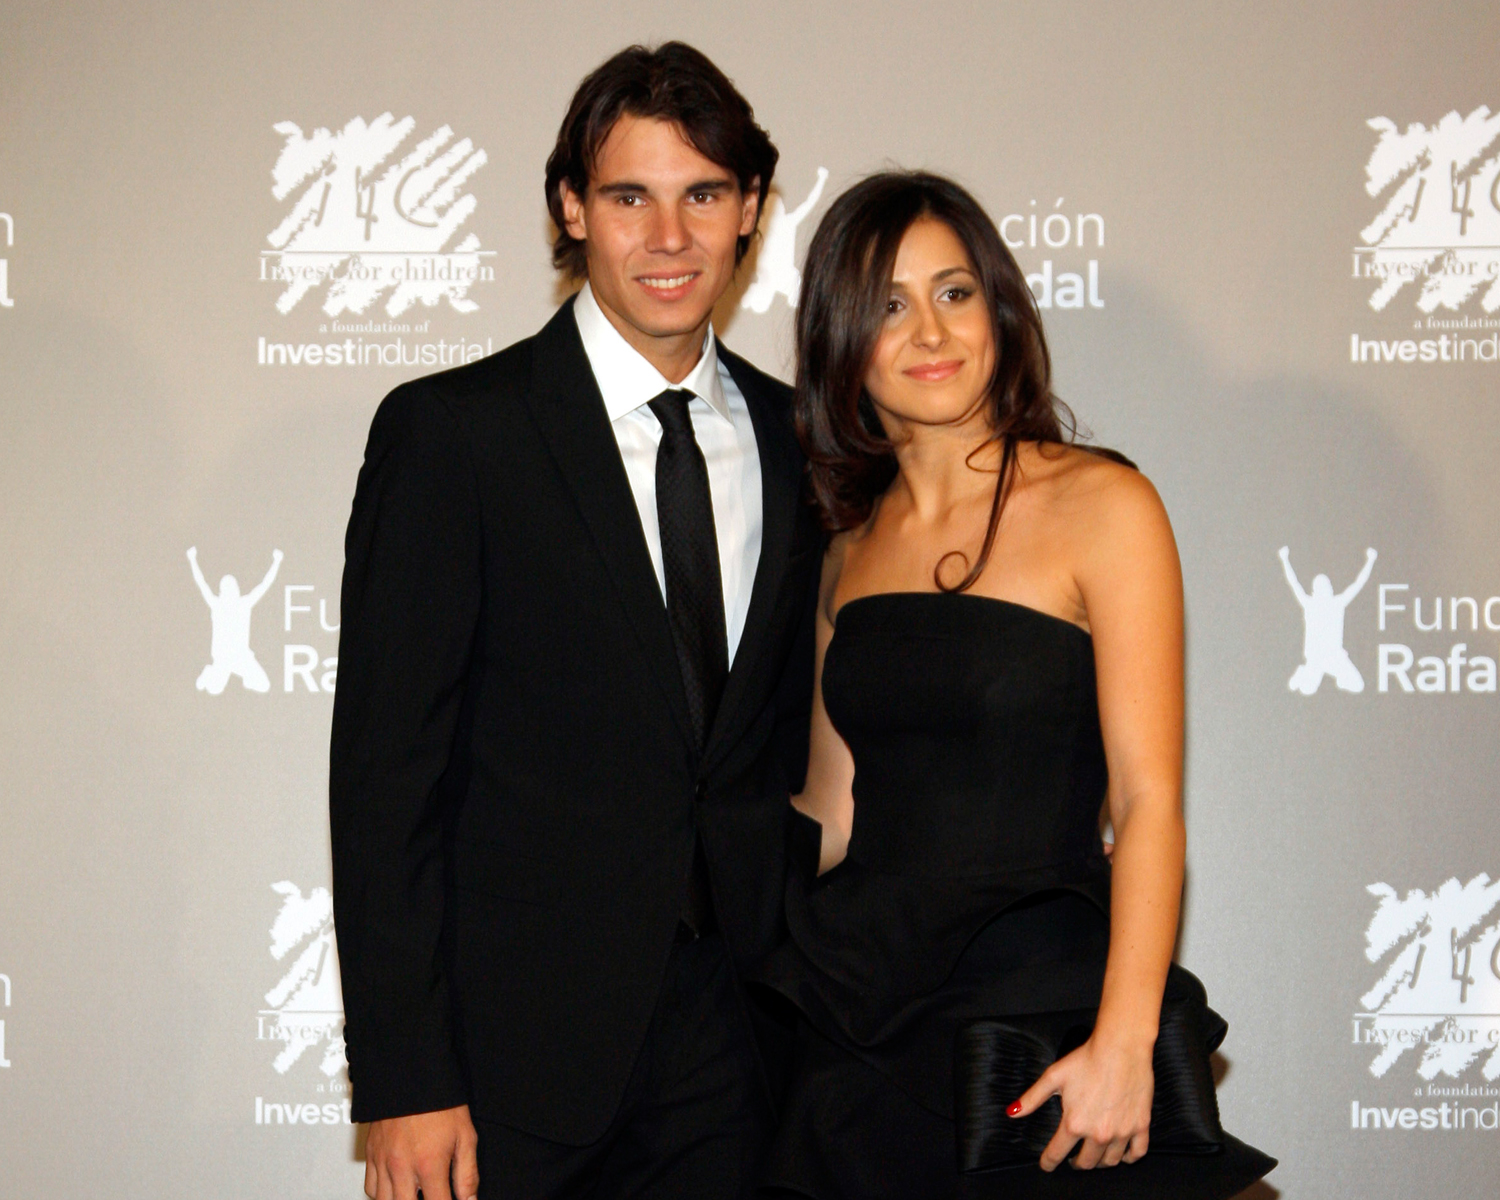 Tennis Champion Rafael Nadal Is Engaged To His Girlfriend Of 14 Years